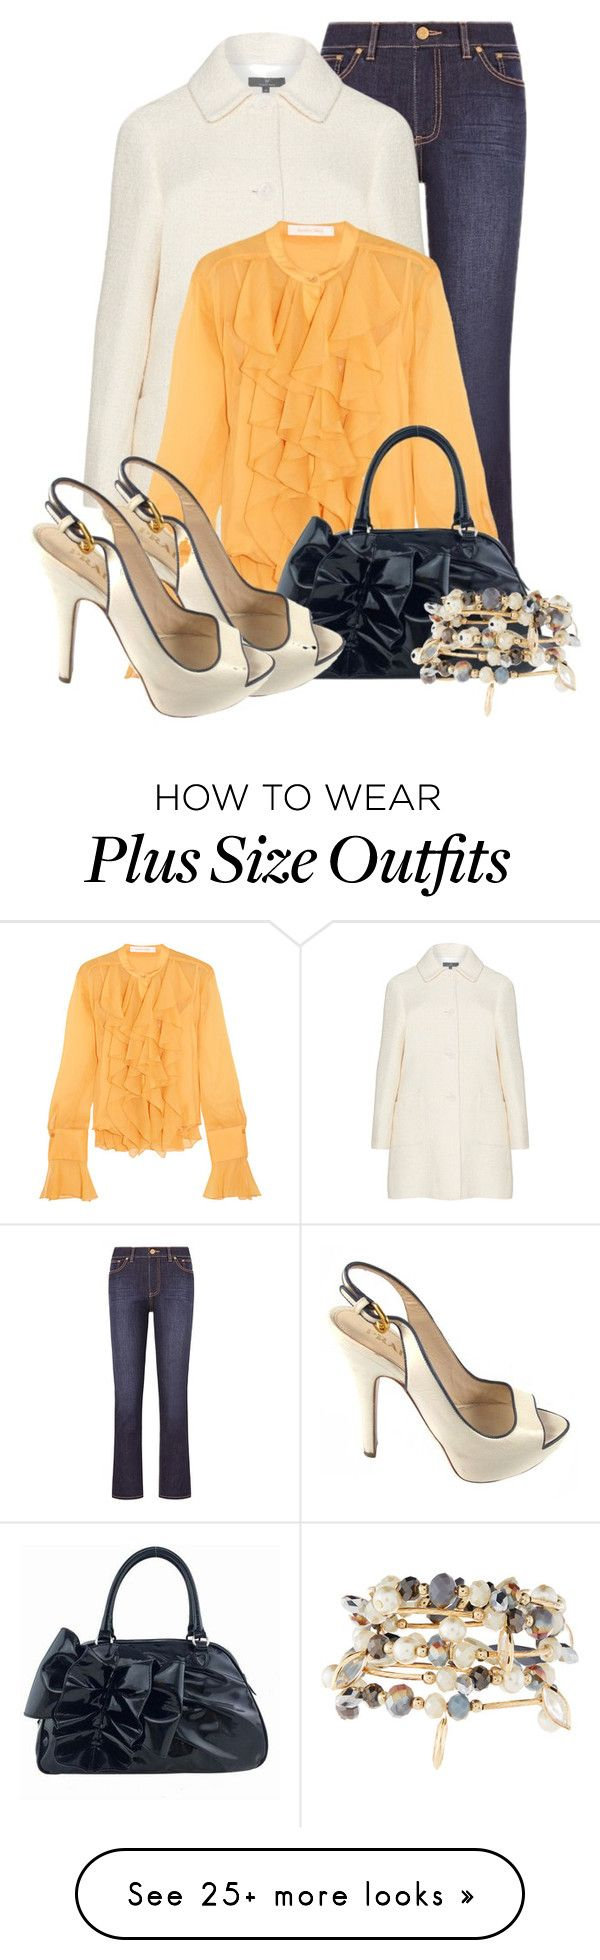 """""""Ruffle Top"""" by lchar on Polyvore featuring Tory Burch, See by Chloé, Valentino, Prada and Emily & Ashley"""